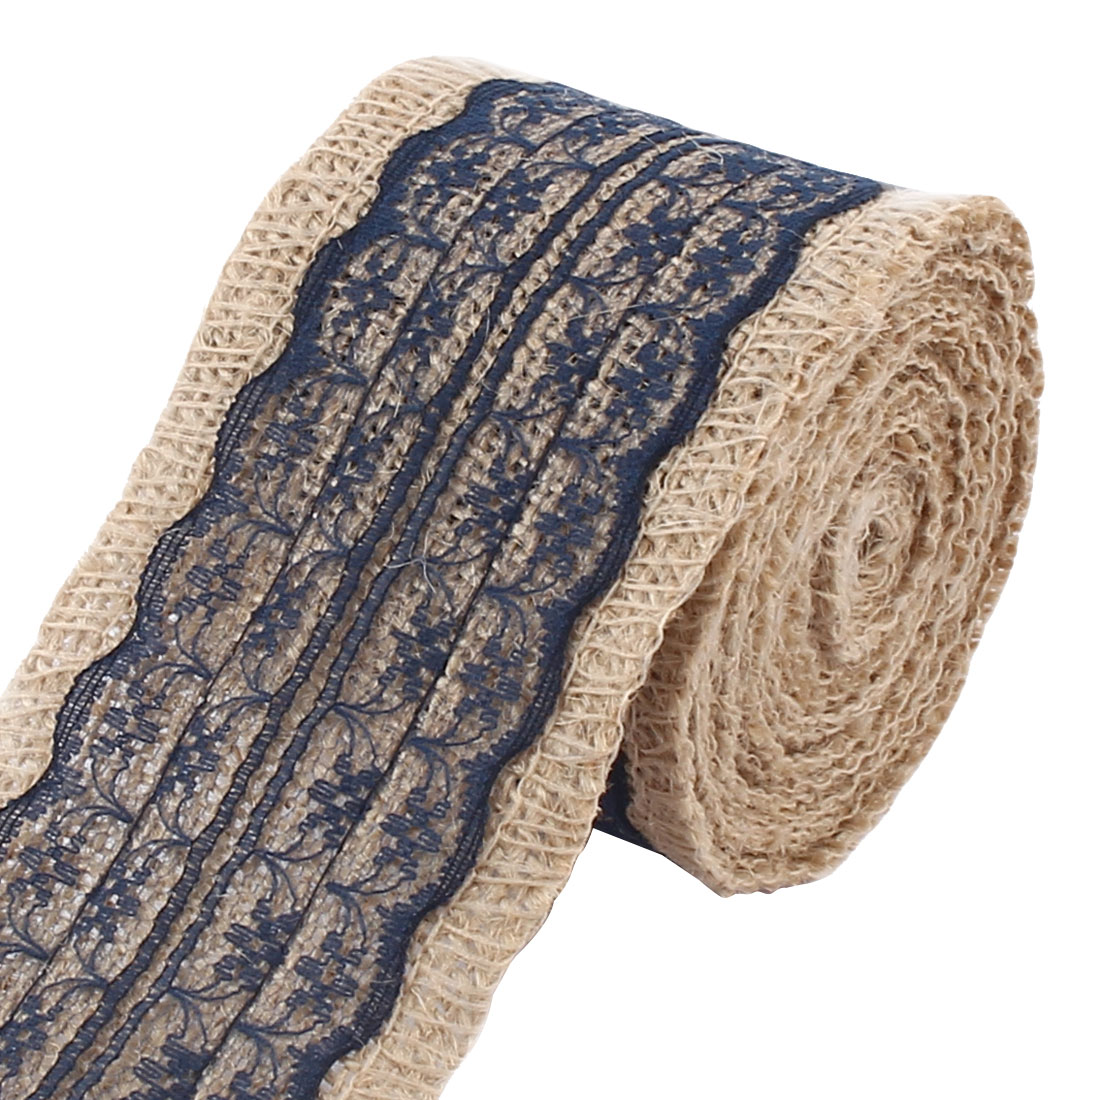 Unique Bargains Christmas Burlap DIY Gift Wrapping Packing Craft Ribbon Roll Tape Navy Blue